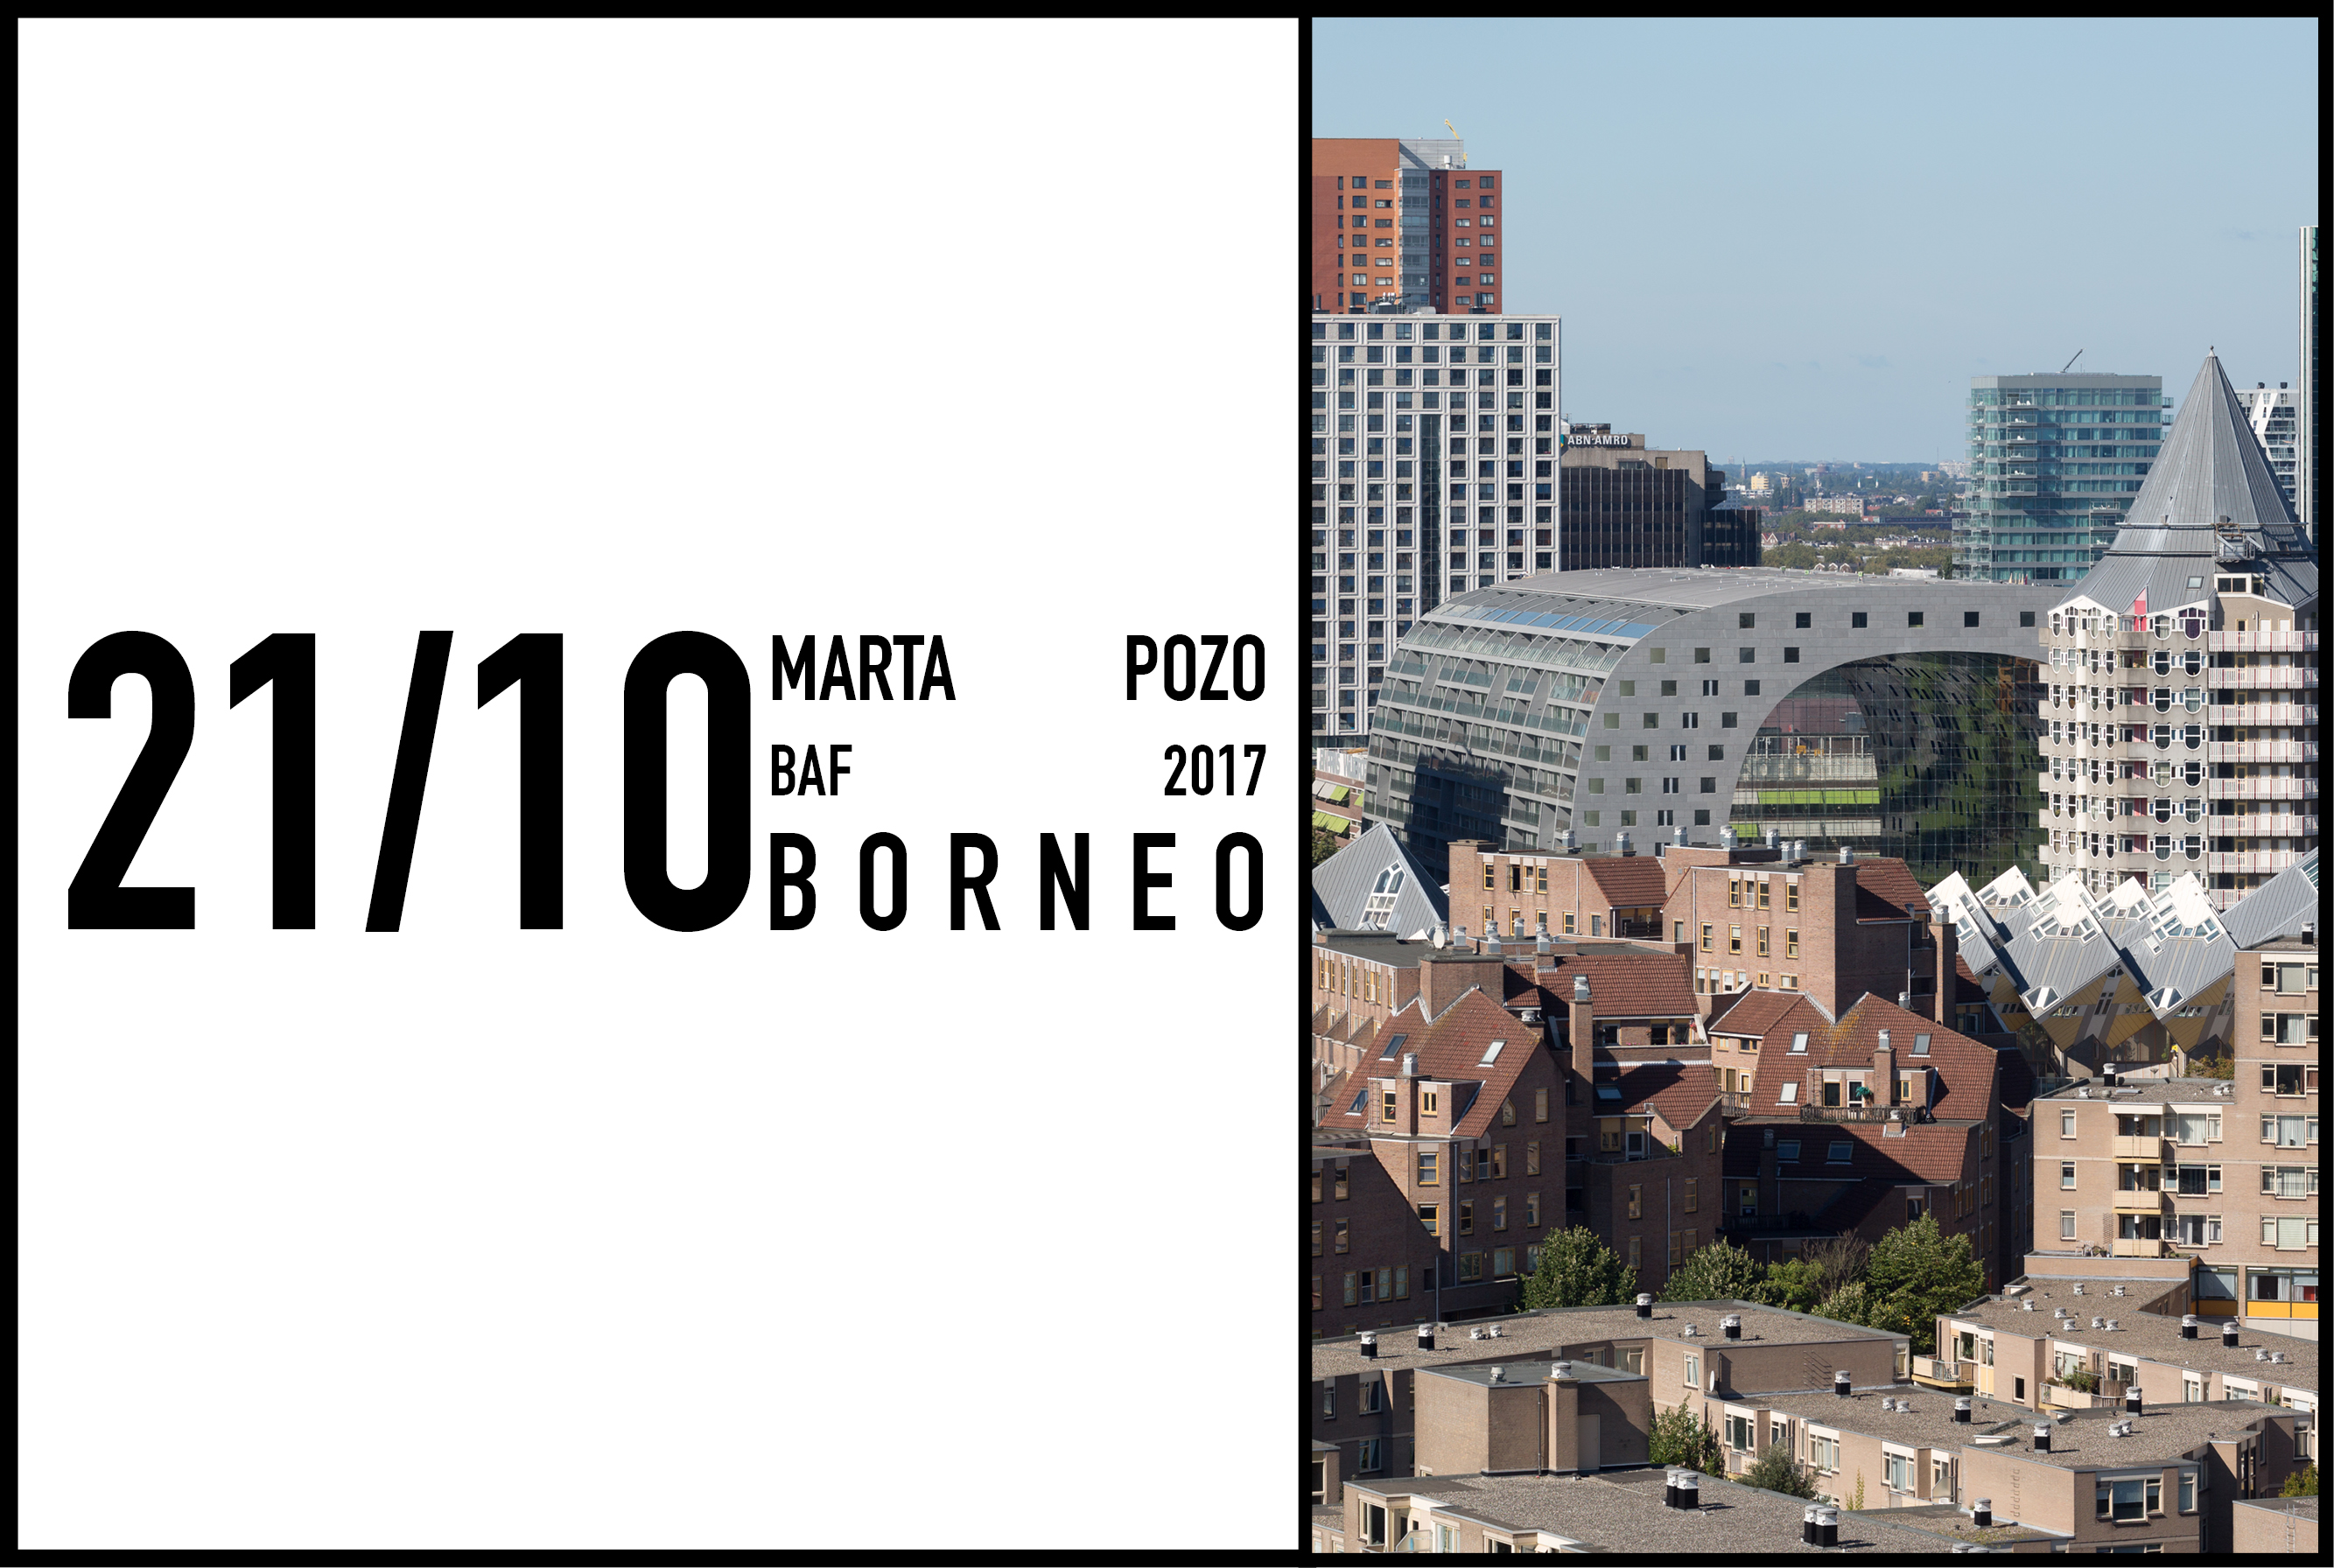 Marta Pozo to speak at Borneo Architecture Festival, 21 October 2017